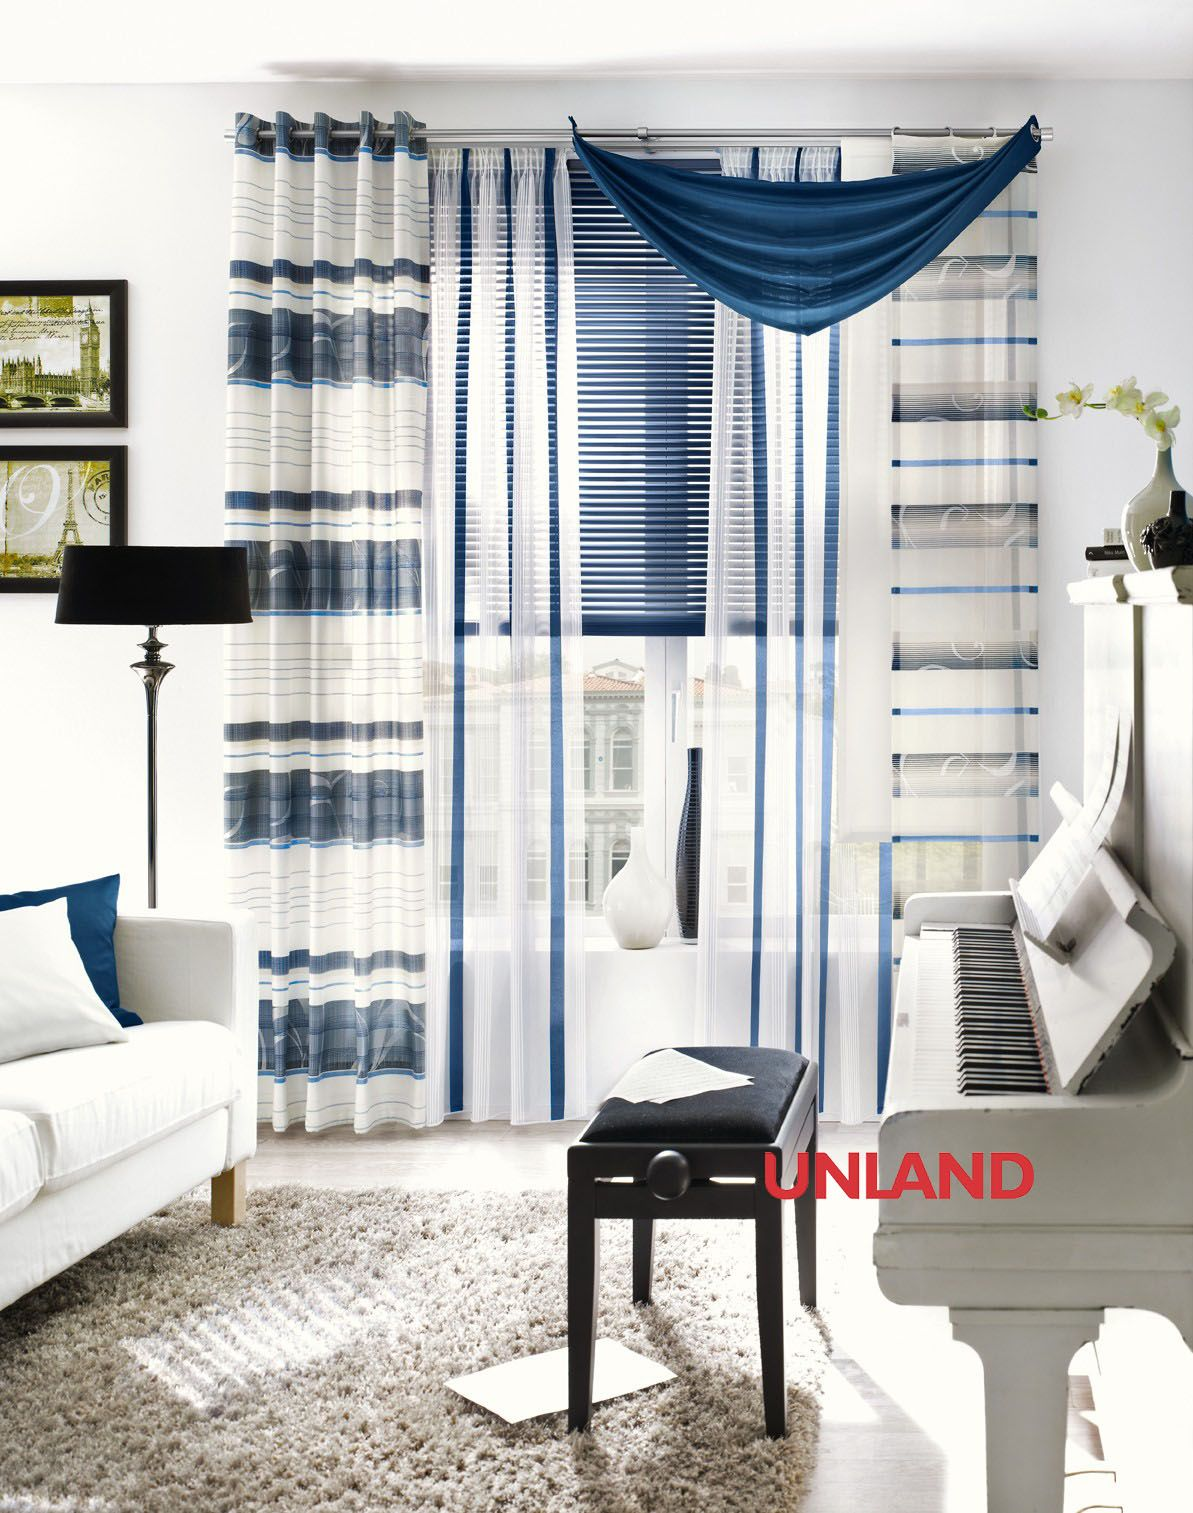 unland andro fensterideen vorhang gardinen und sonnenschutz curtains contract fabrics. Black Bedroom Furniture Sets. Home Design Ideas